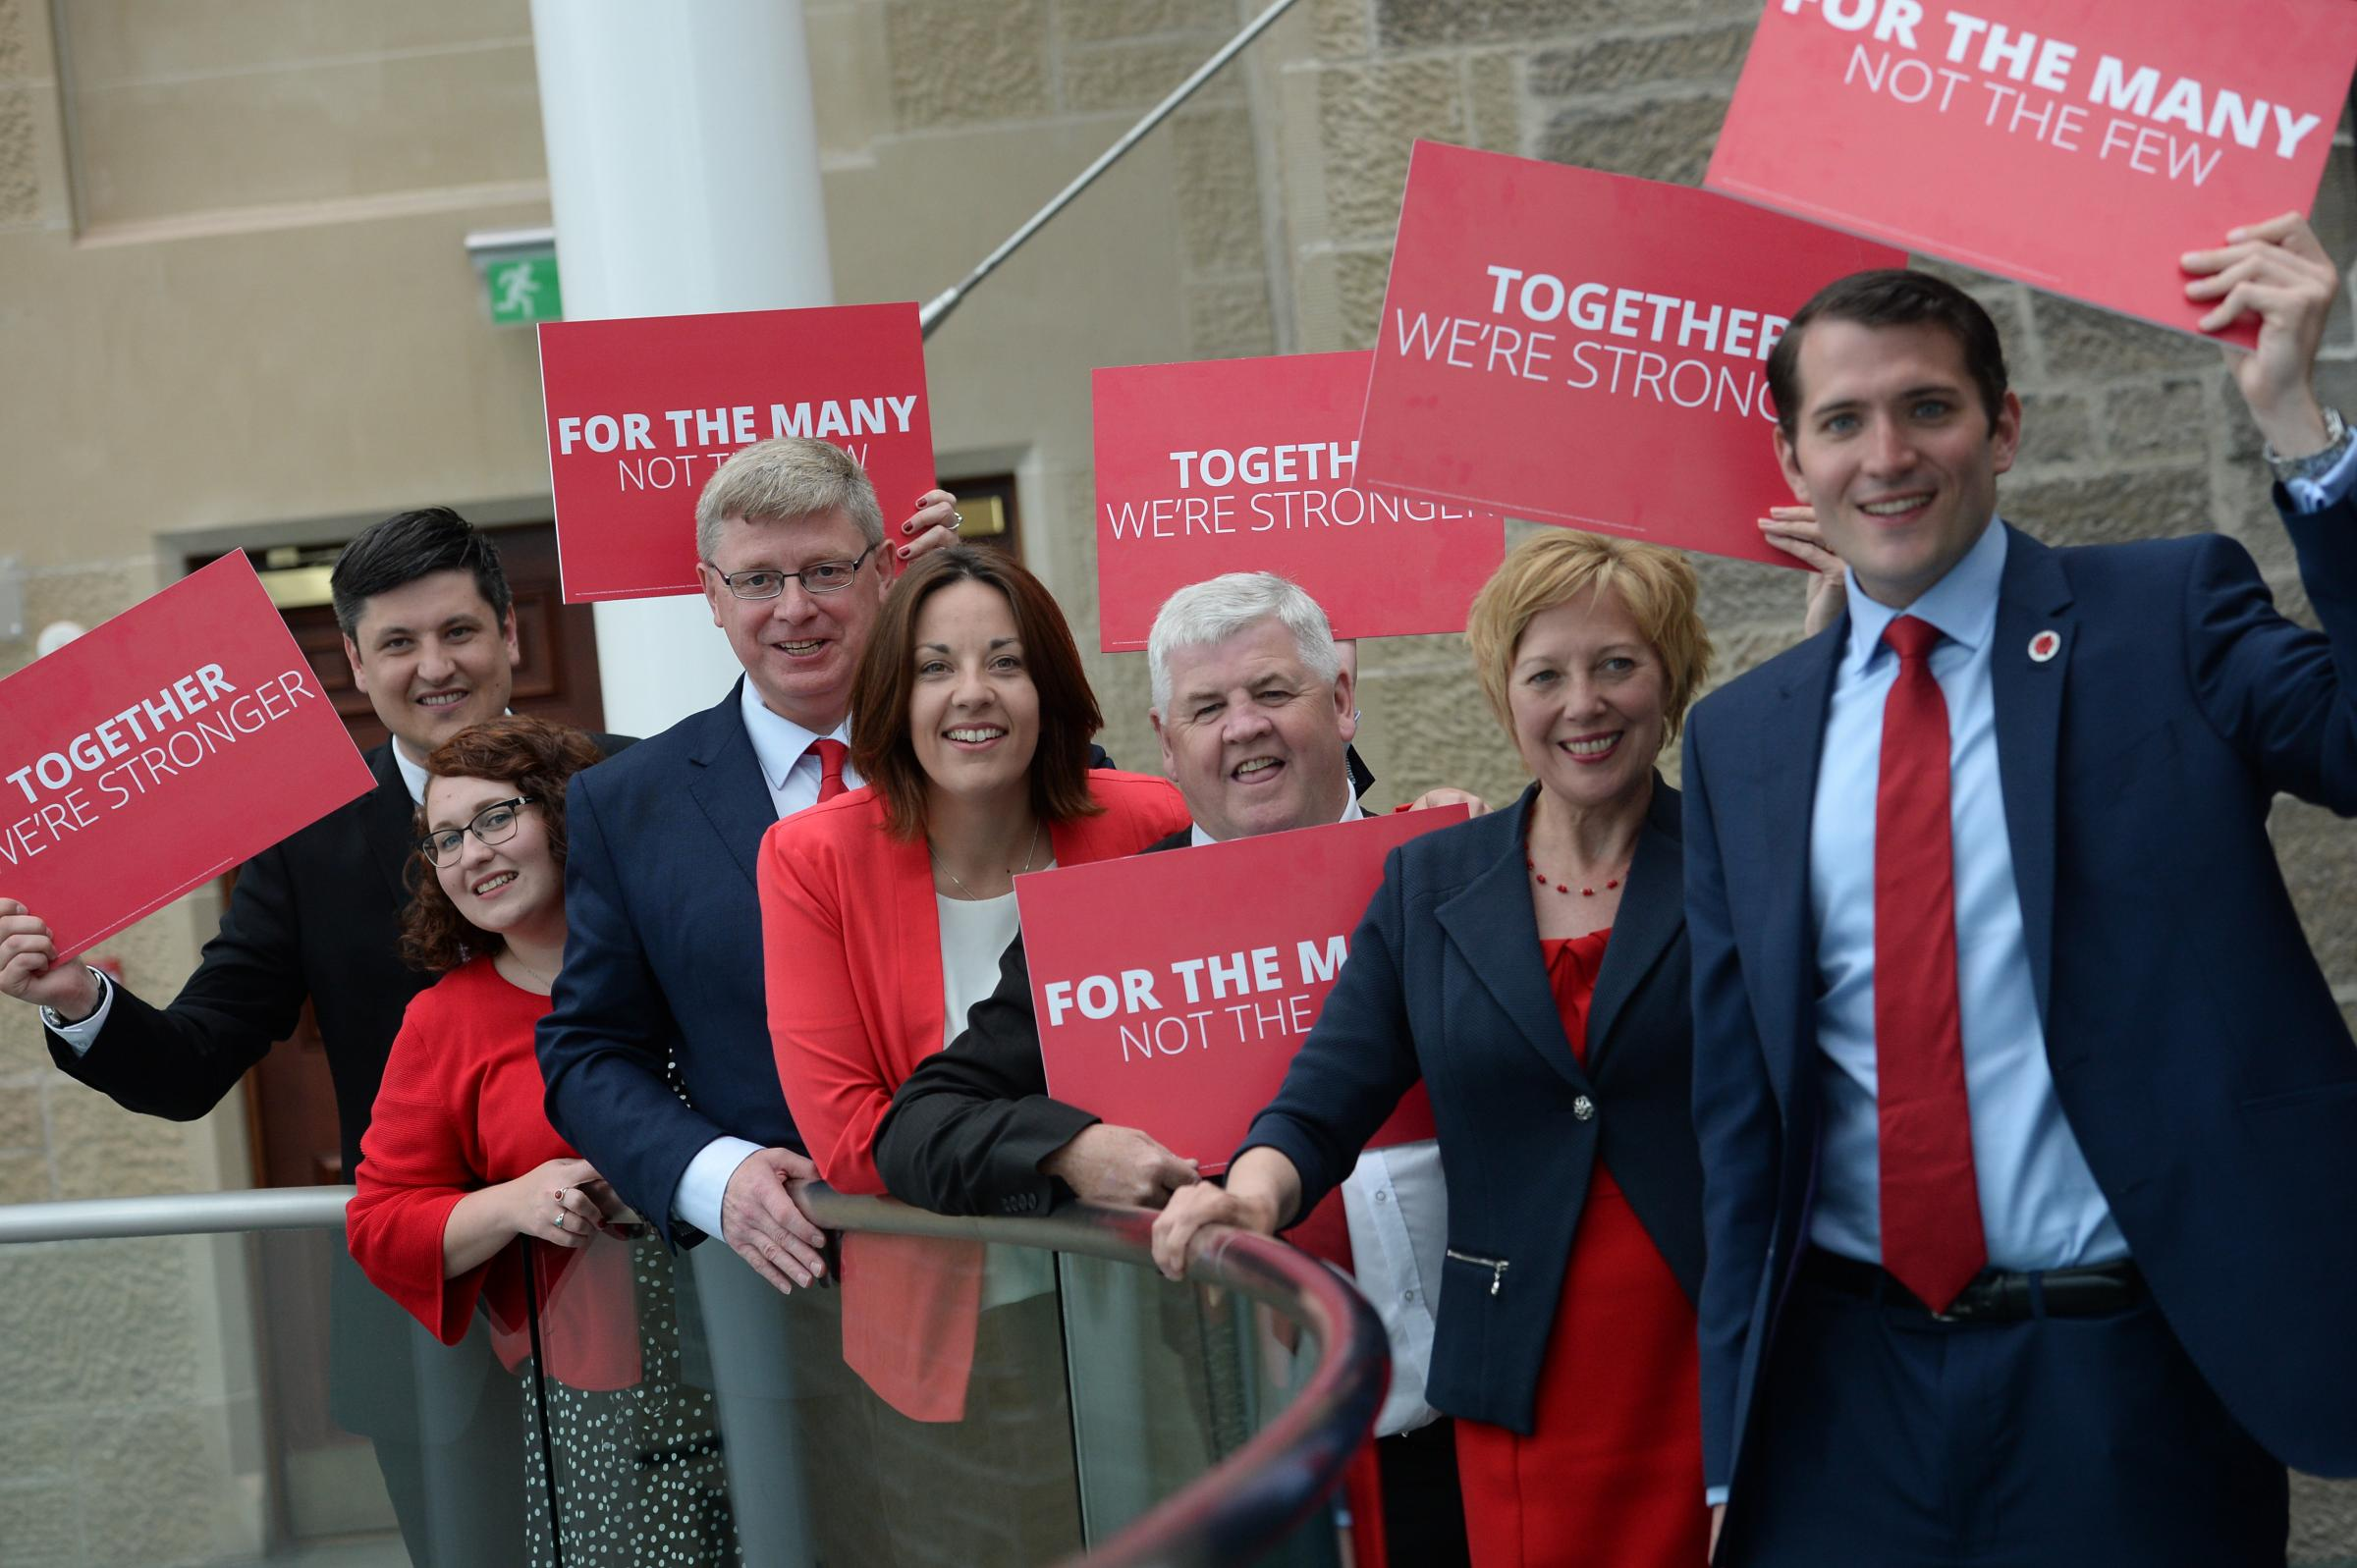 Paul Sweeney, right, with the rest of the new Labour MPs and Kezia Dugdale